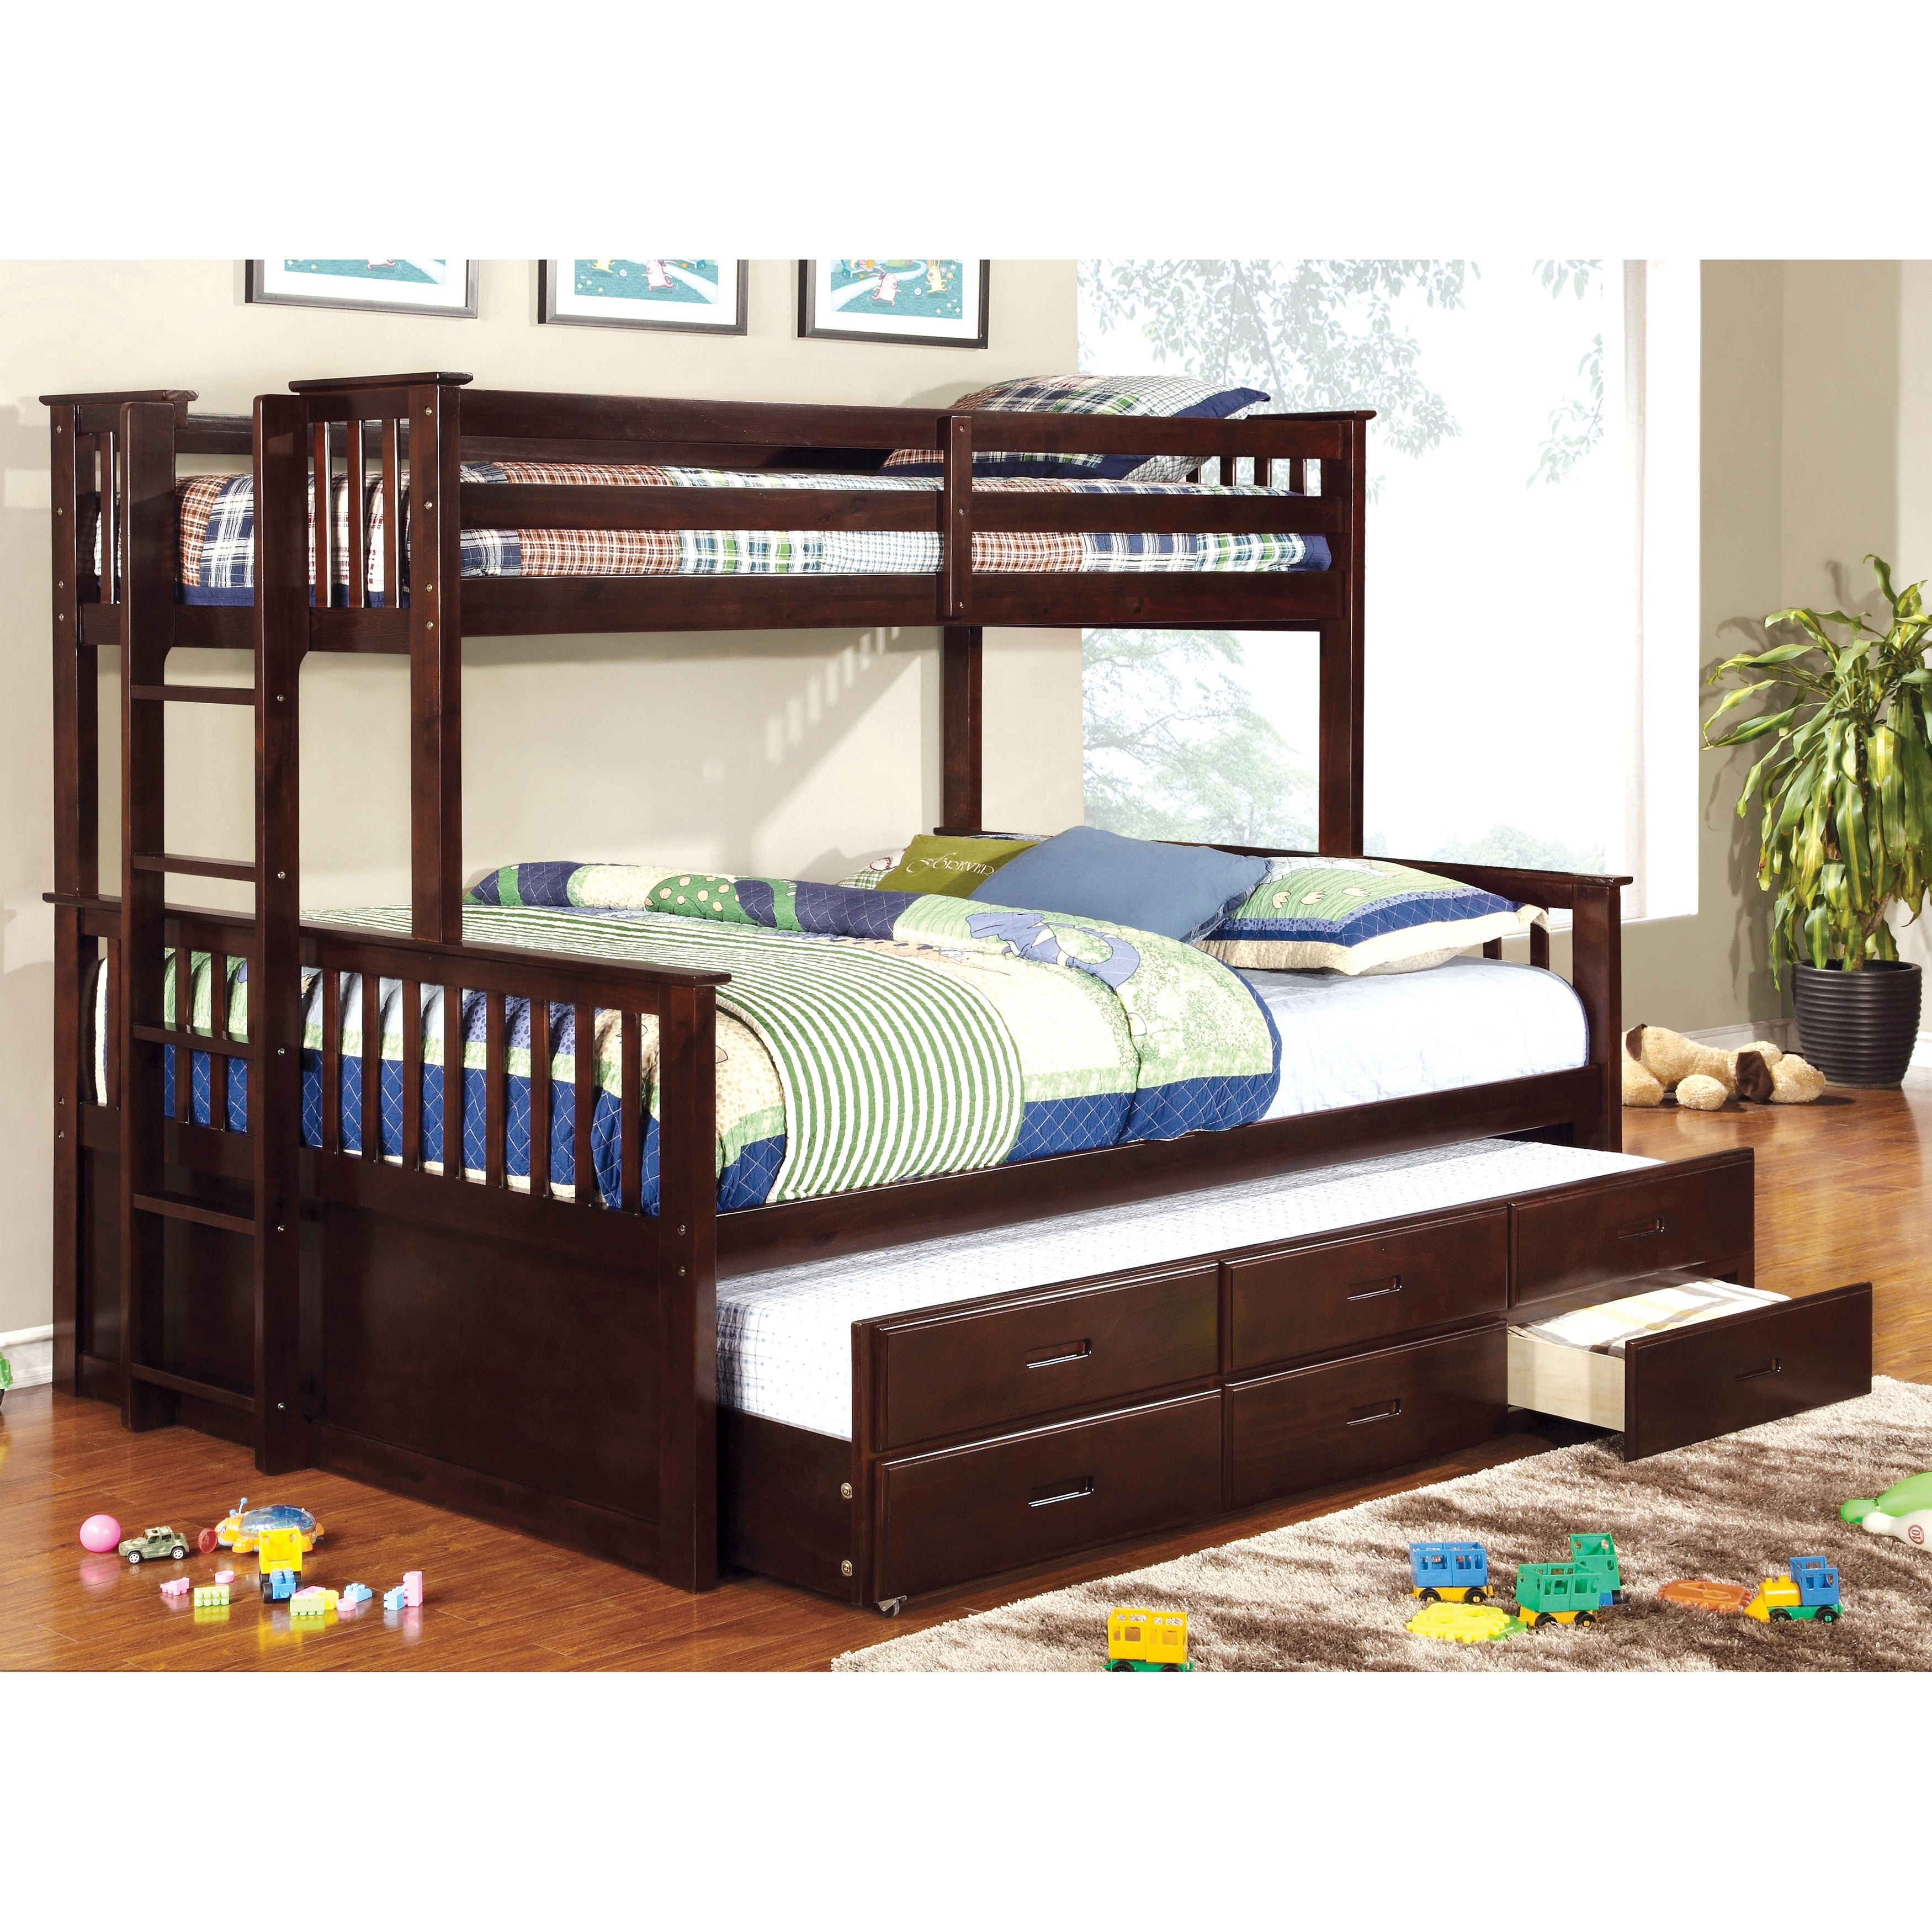 Shop Furniture Of America Rodman Twin Over Queen Bunk Bed With